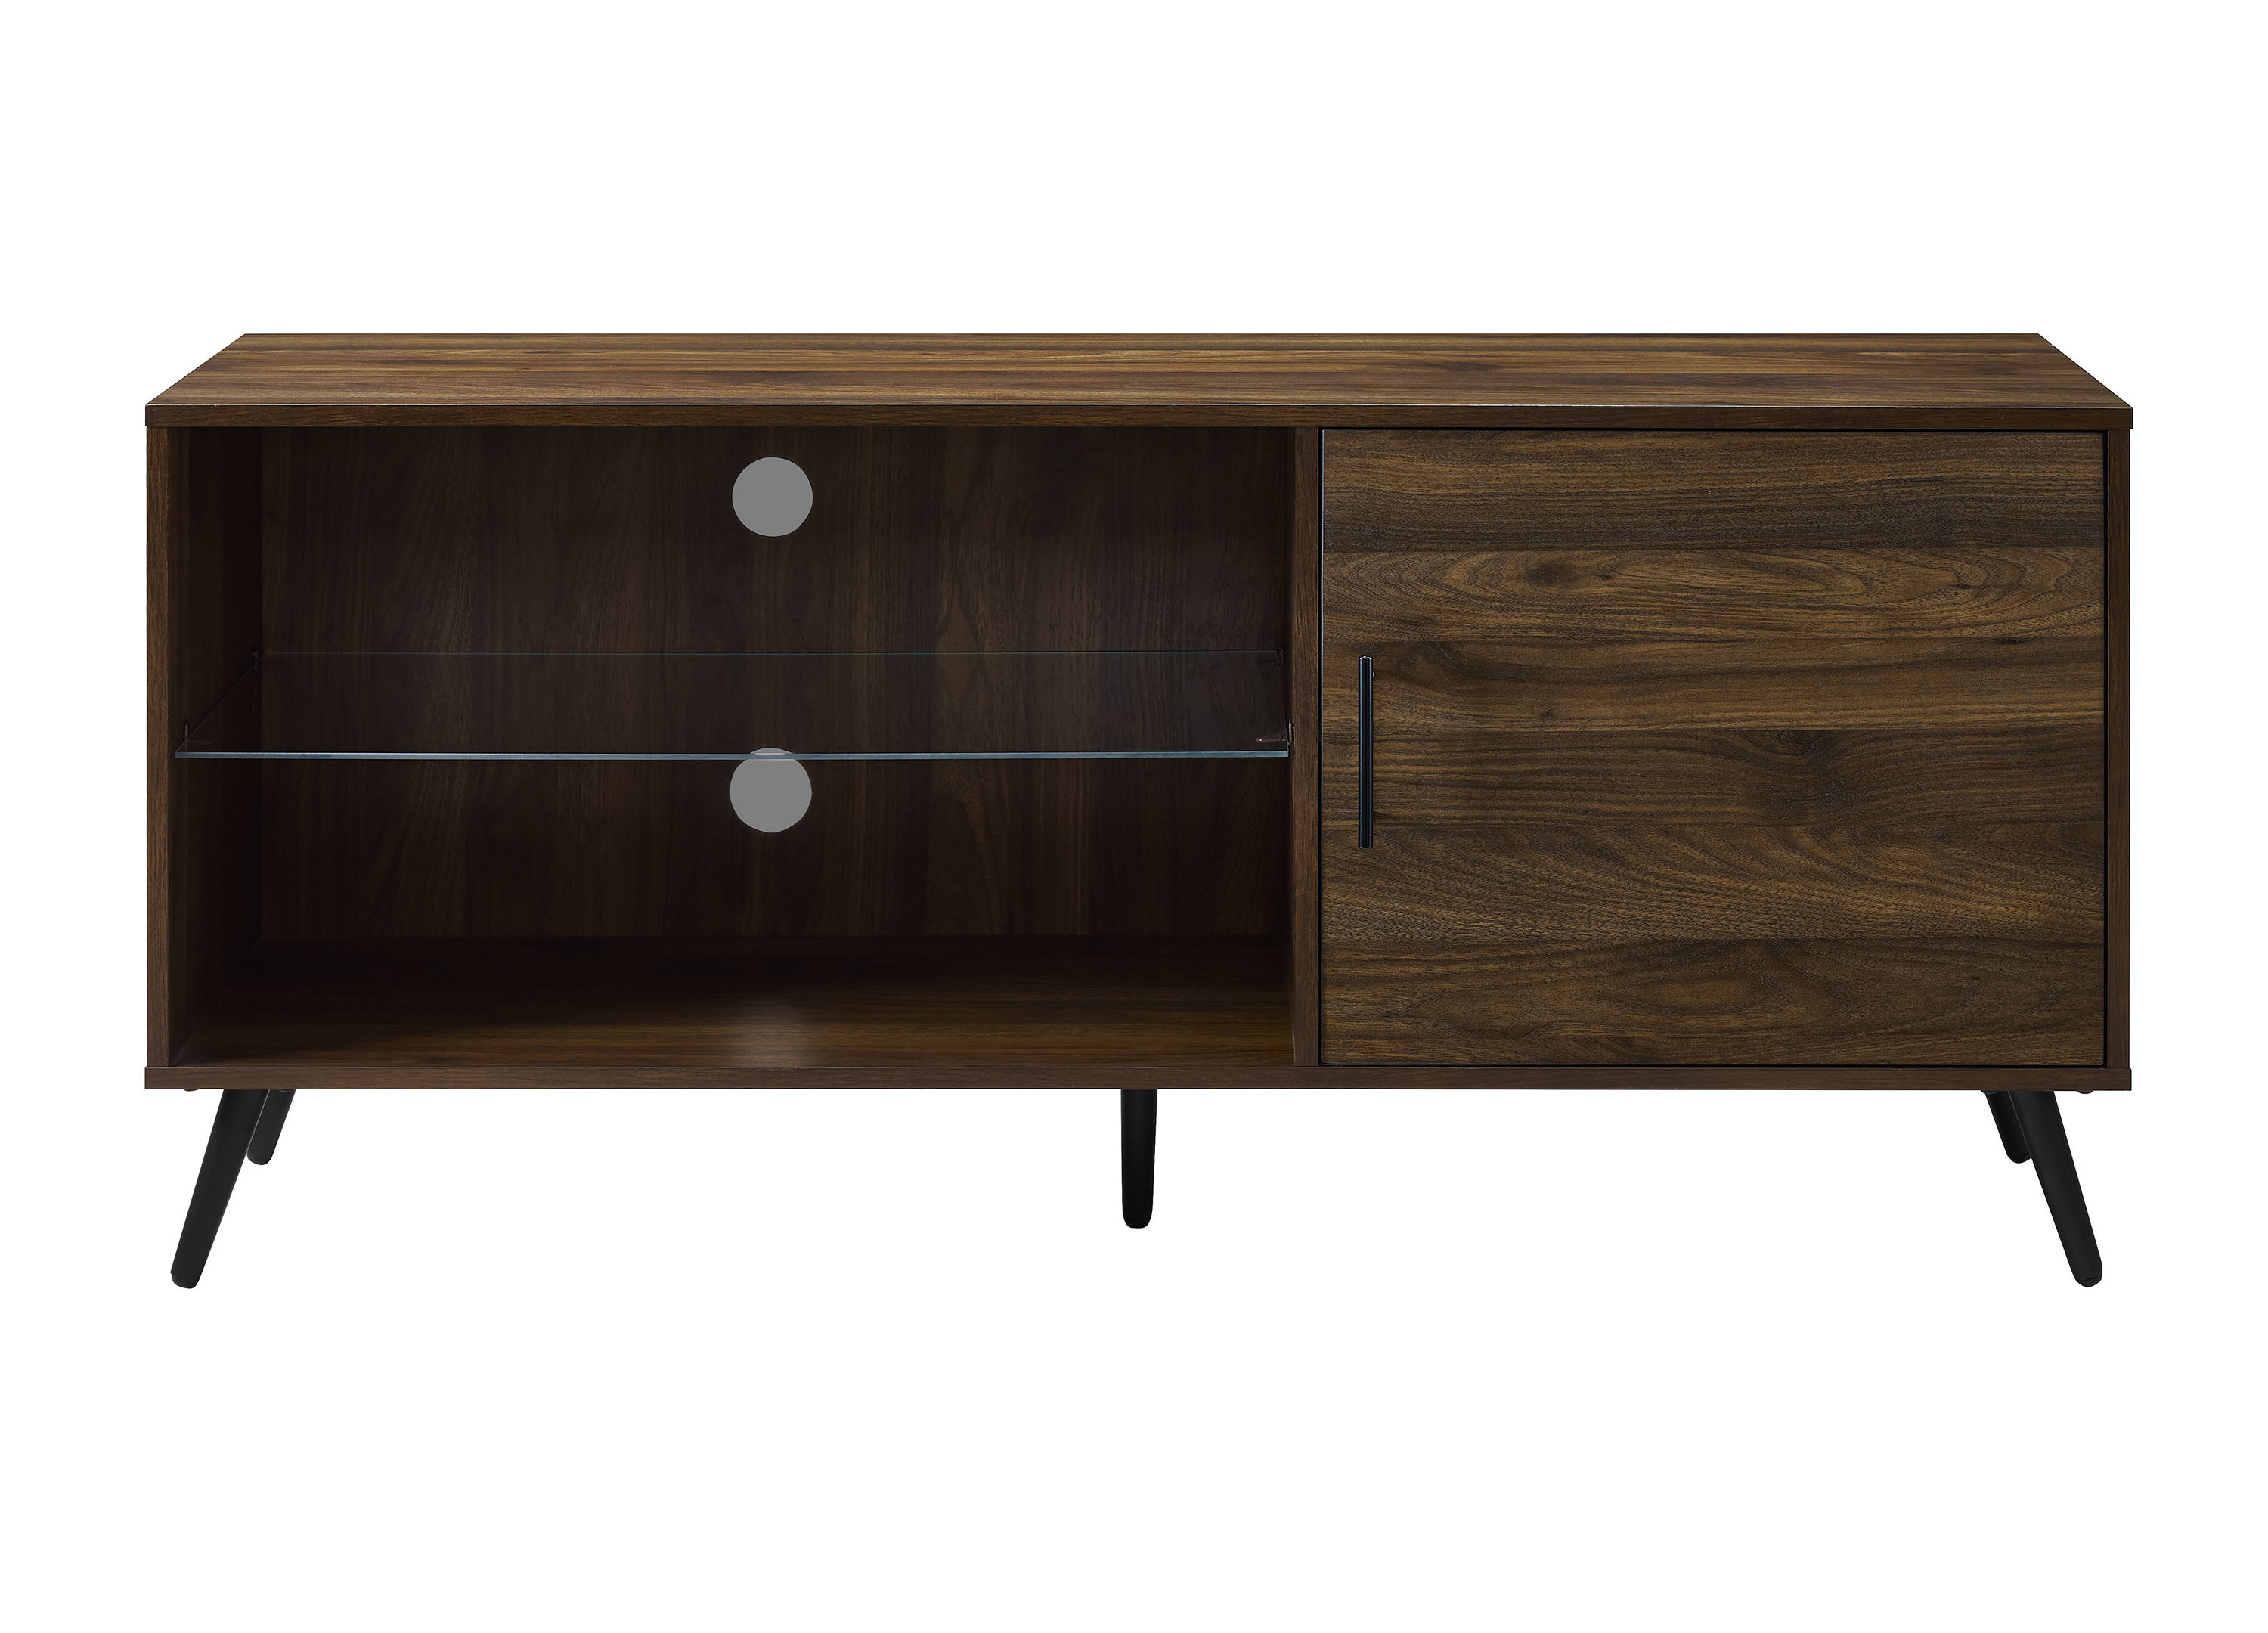 Allmodern In Popular Retro Corner Tv Stands (View 1 of 20)